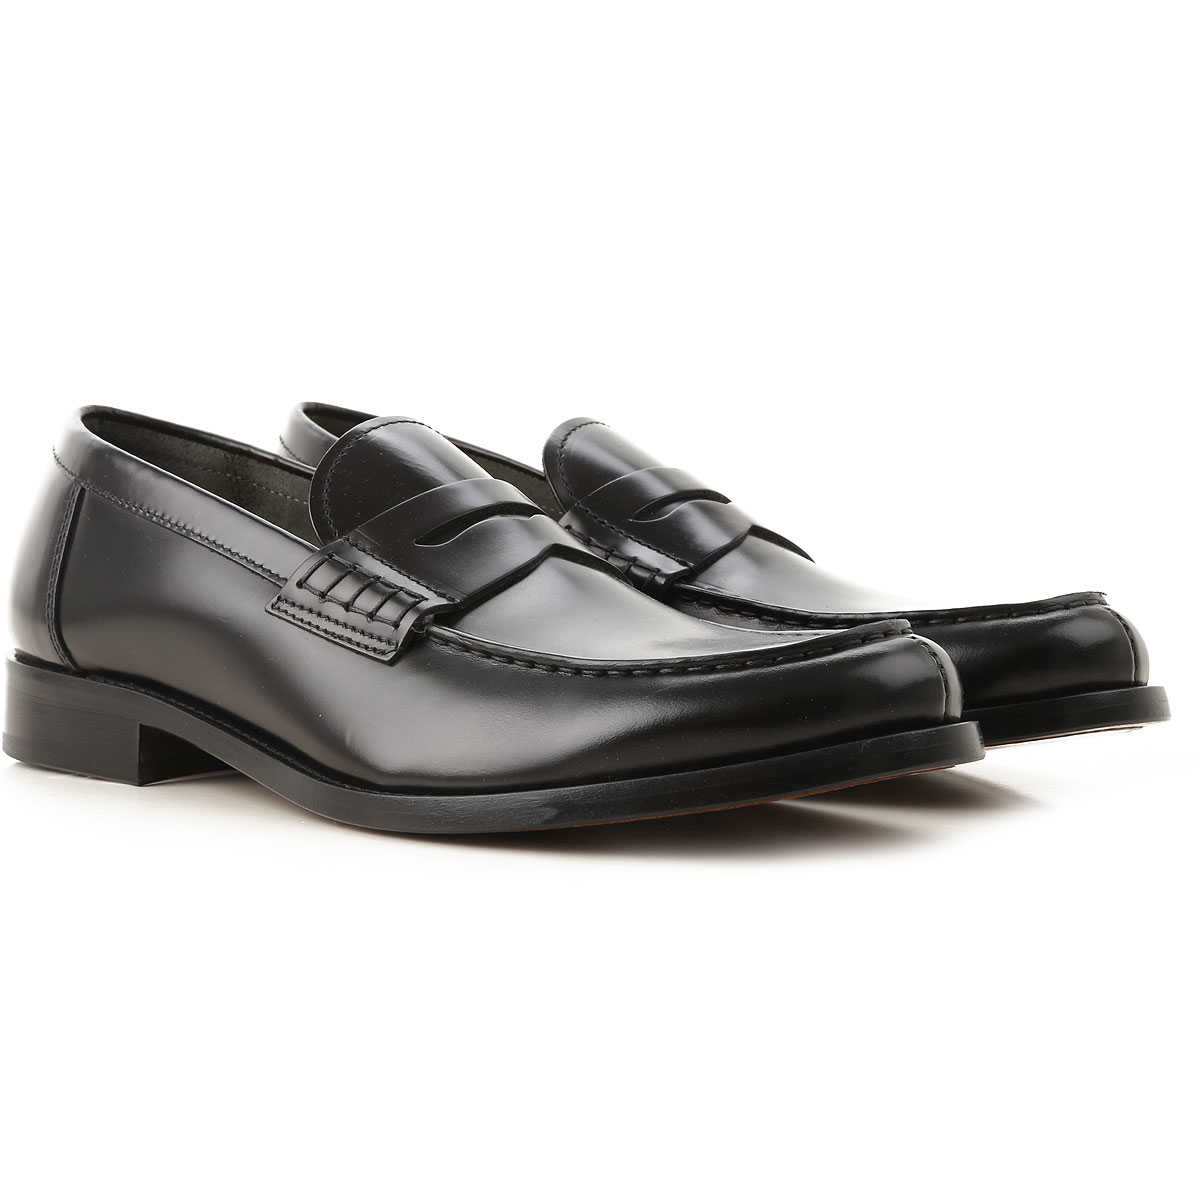 Doucals Loafers for Men Black USA - GOOFASH